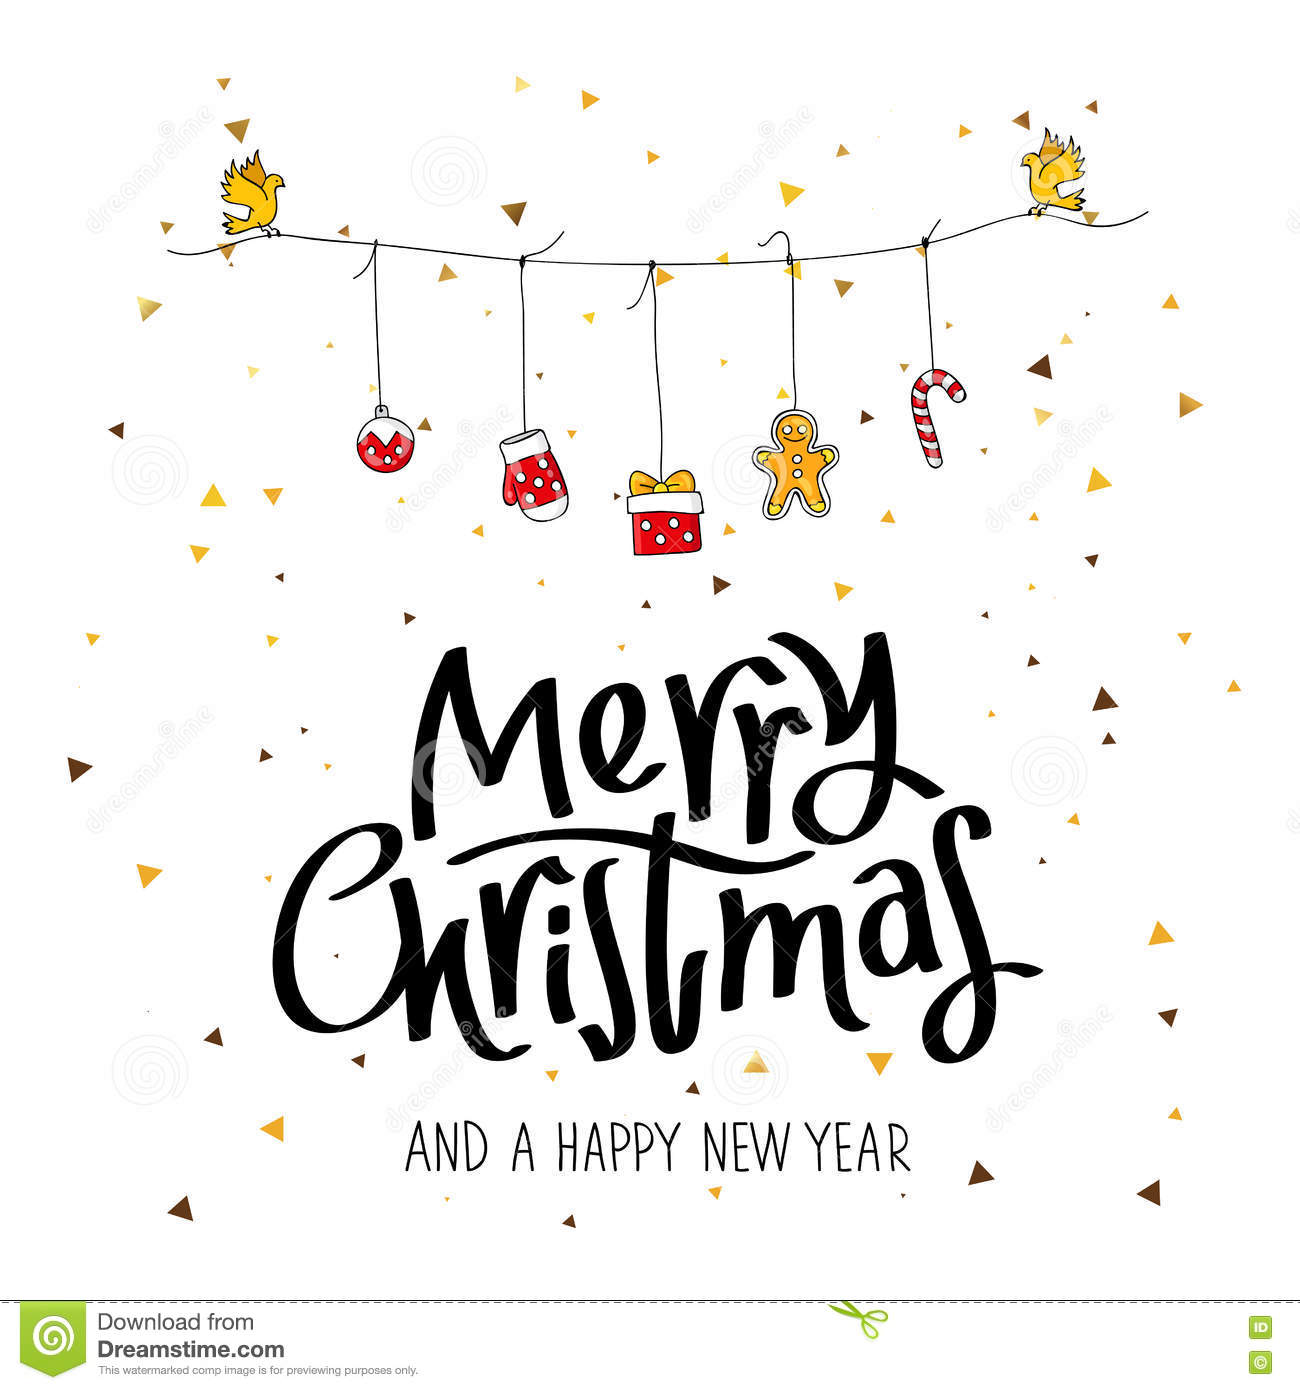 Merry Christmas And A Happy New Year Stock Vector - Illustration of ...